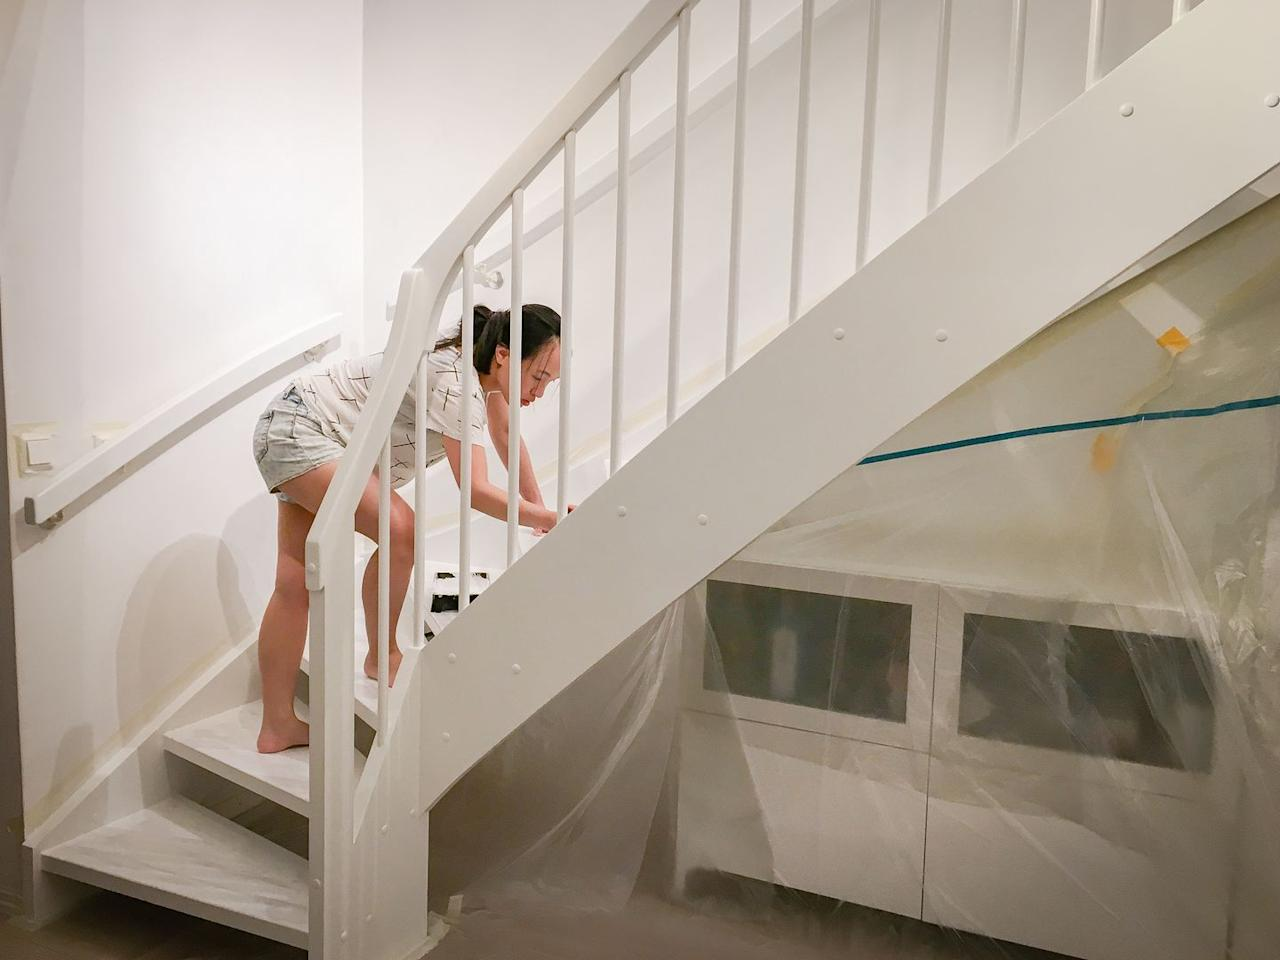 "<p>Staircase remodeling can cost a lot, and this trick will save you money if you do it yourself. Sarah Logan, editor of <a href=""https://thebunnyhub.com/"" target=""_blank"">The Bunny Hub</a>, recommends that you paint your staircase so that it looks like it has a carpet runner. ""This gives you the cozy look and feel of a carpet, without the maintenance of owning a carpet,"" she says.<br></p><p>If you're going to take on this task, remember that painting can be a bit of a messy job. ""Although we cover furniture and wear old clothes, often people forget about their phone,"" says Jen Stark, founder of <a href=""https://happydiyhome.com/"" target=""_blank"">Happy DIY Home</a>. ""Place your phone in a simple plastic Ziplock, bag and it will stay paint-free and you can still use the screen.""</p>"